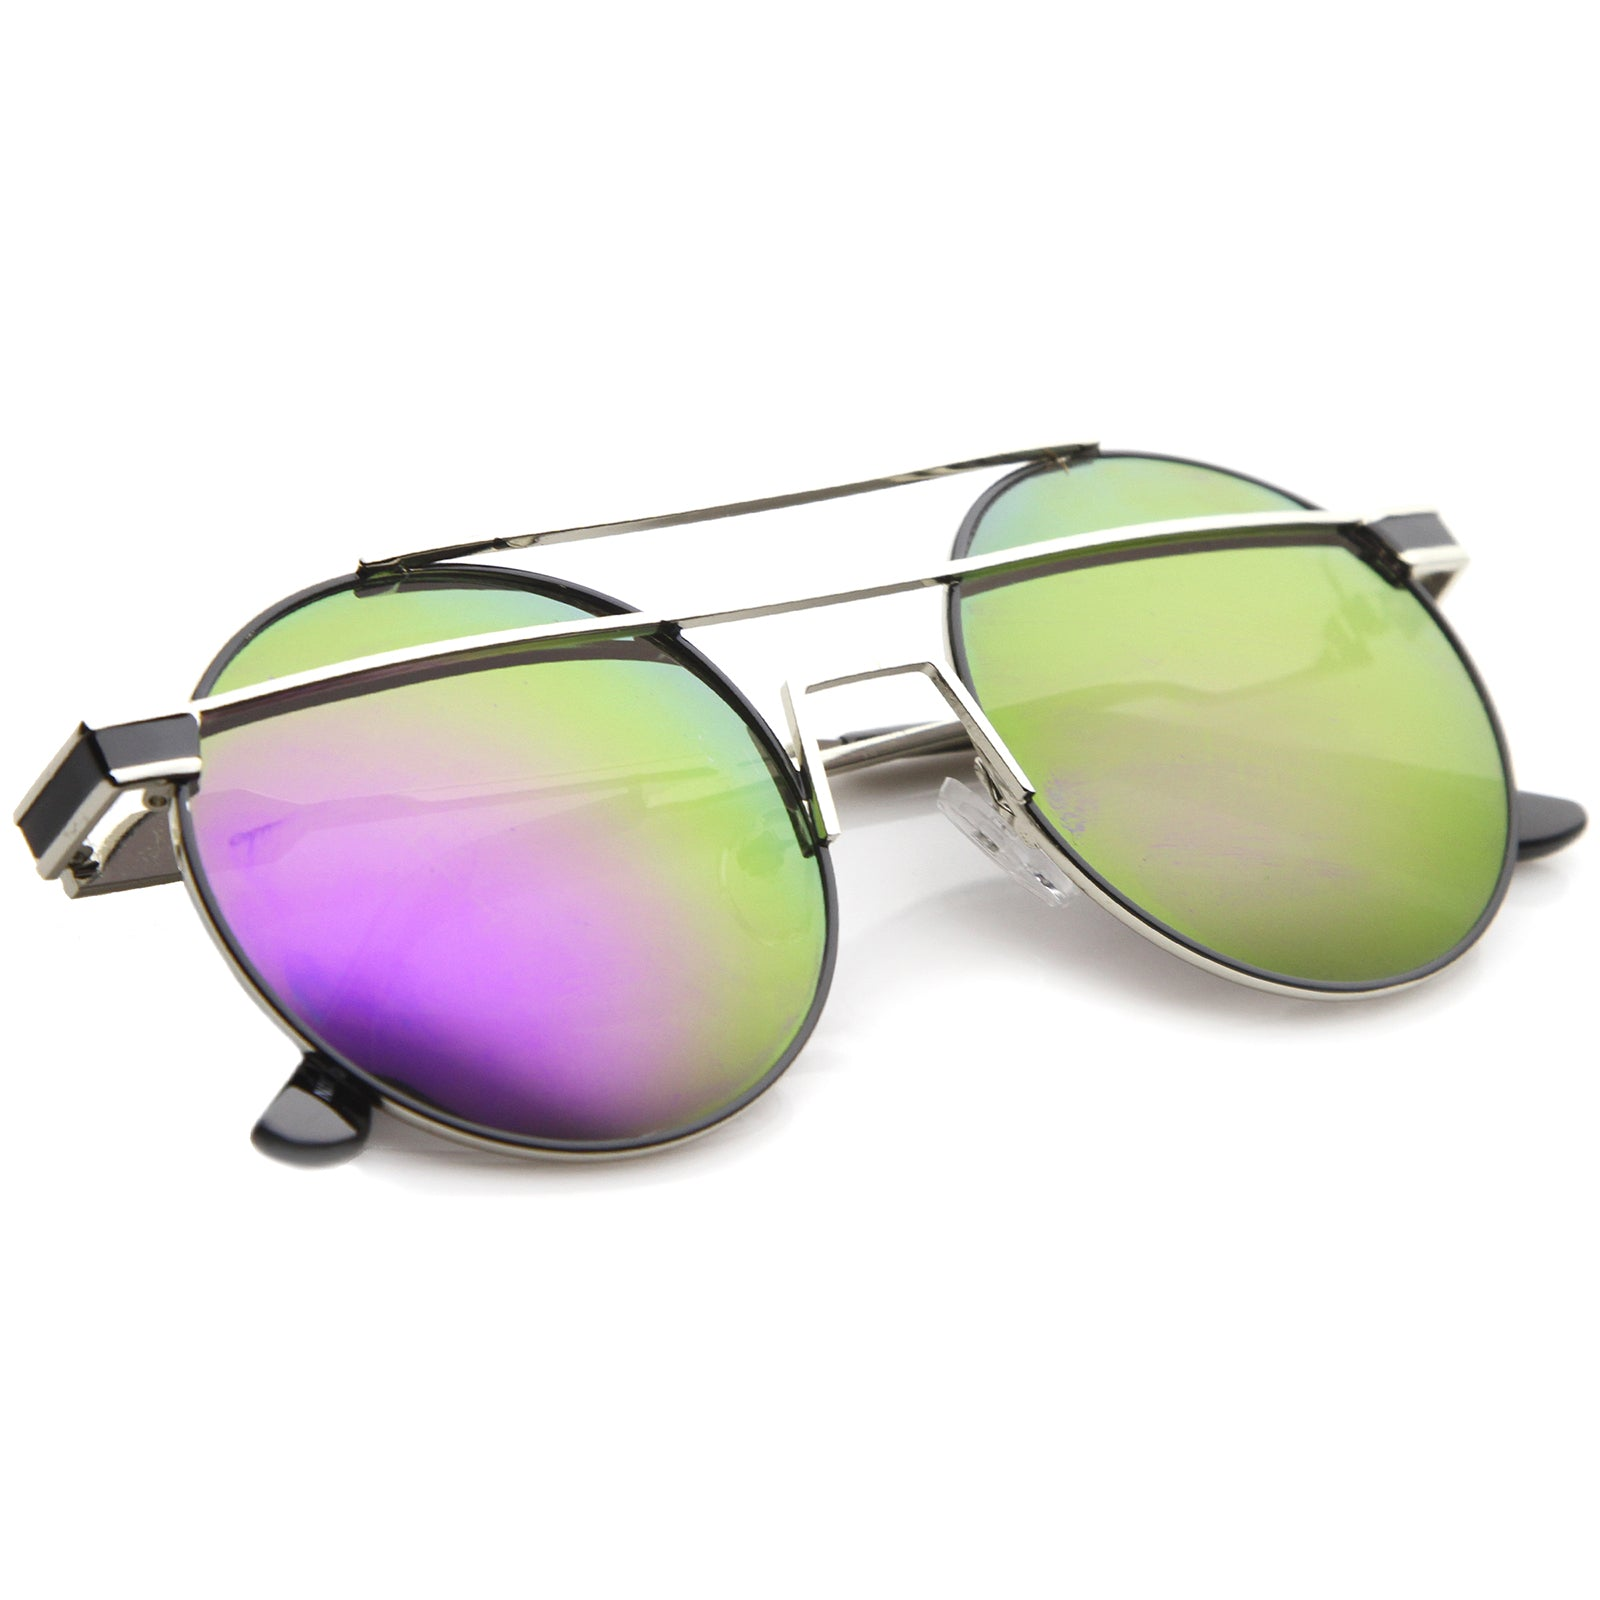 Modern Metal Frame Double Bridge Colored Mirror Lens Round Sunglasses 59mm - sunglass.la - 20